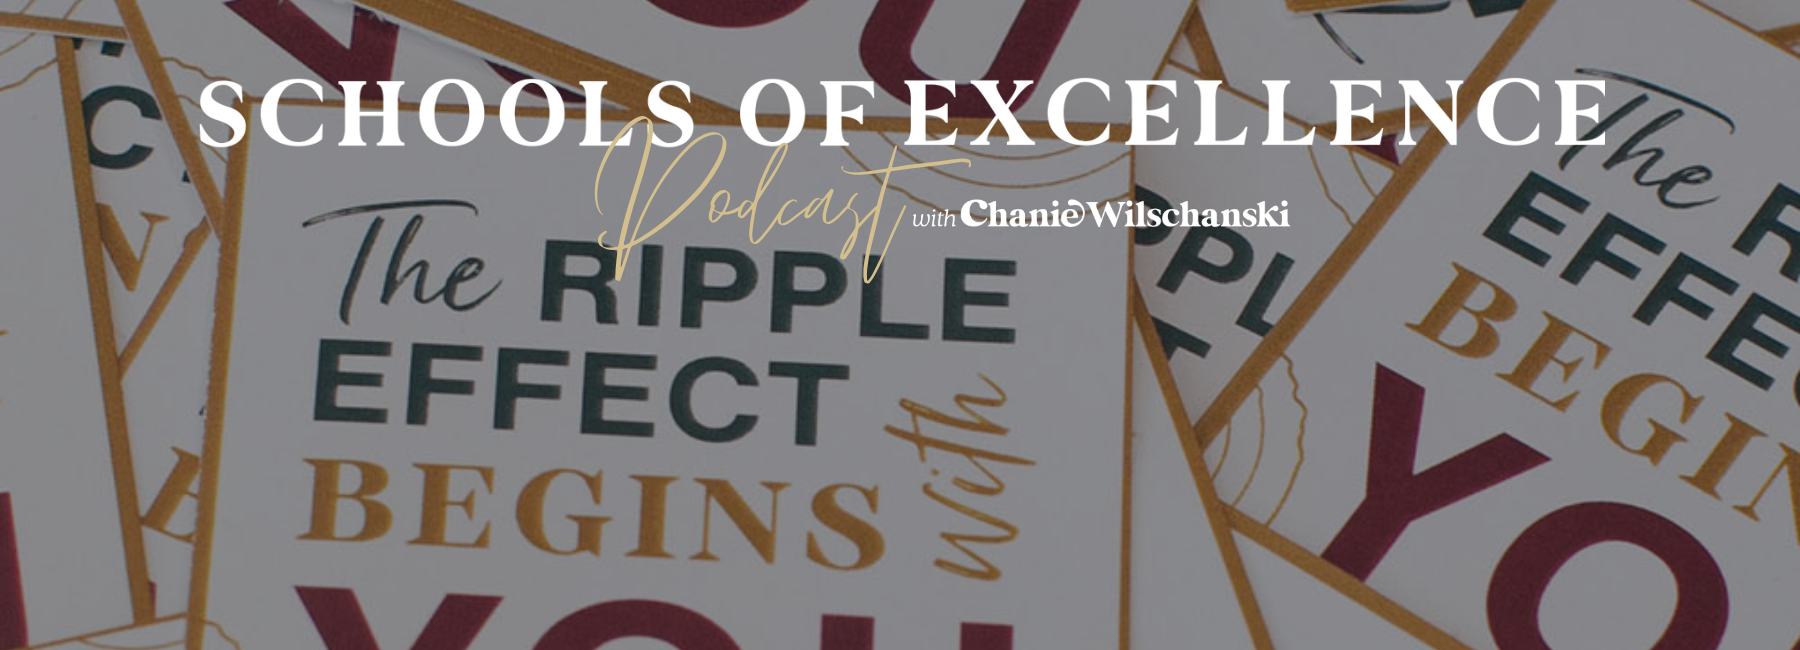 The Ripple Effect: It Starts With You